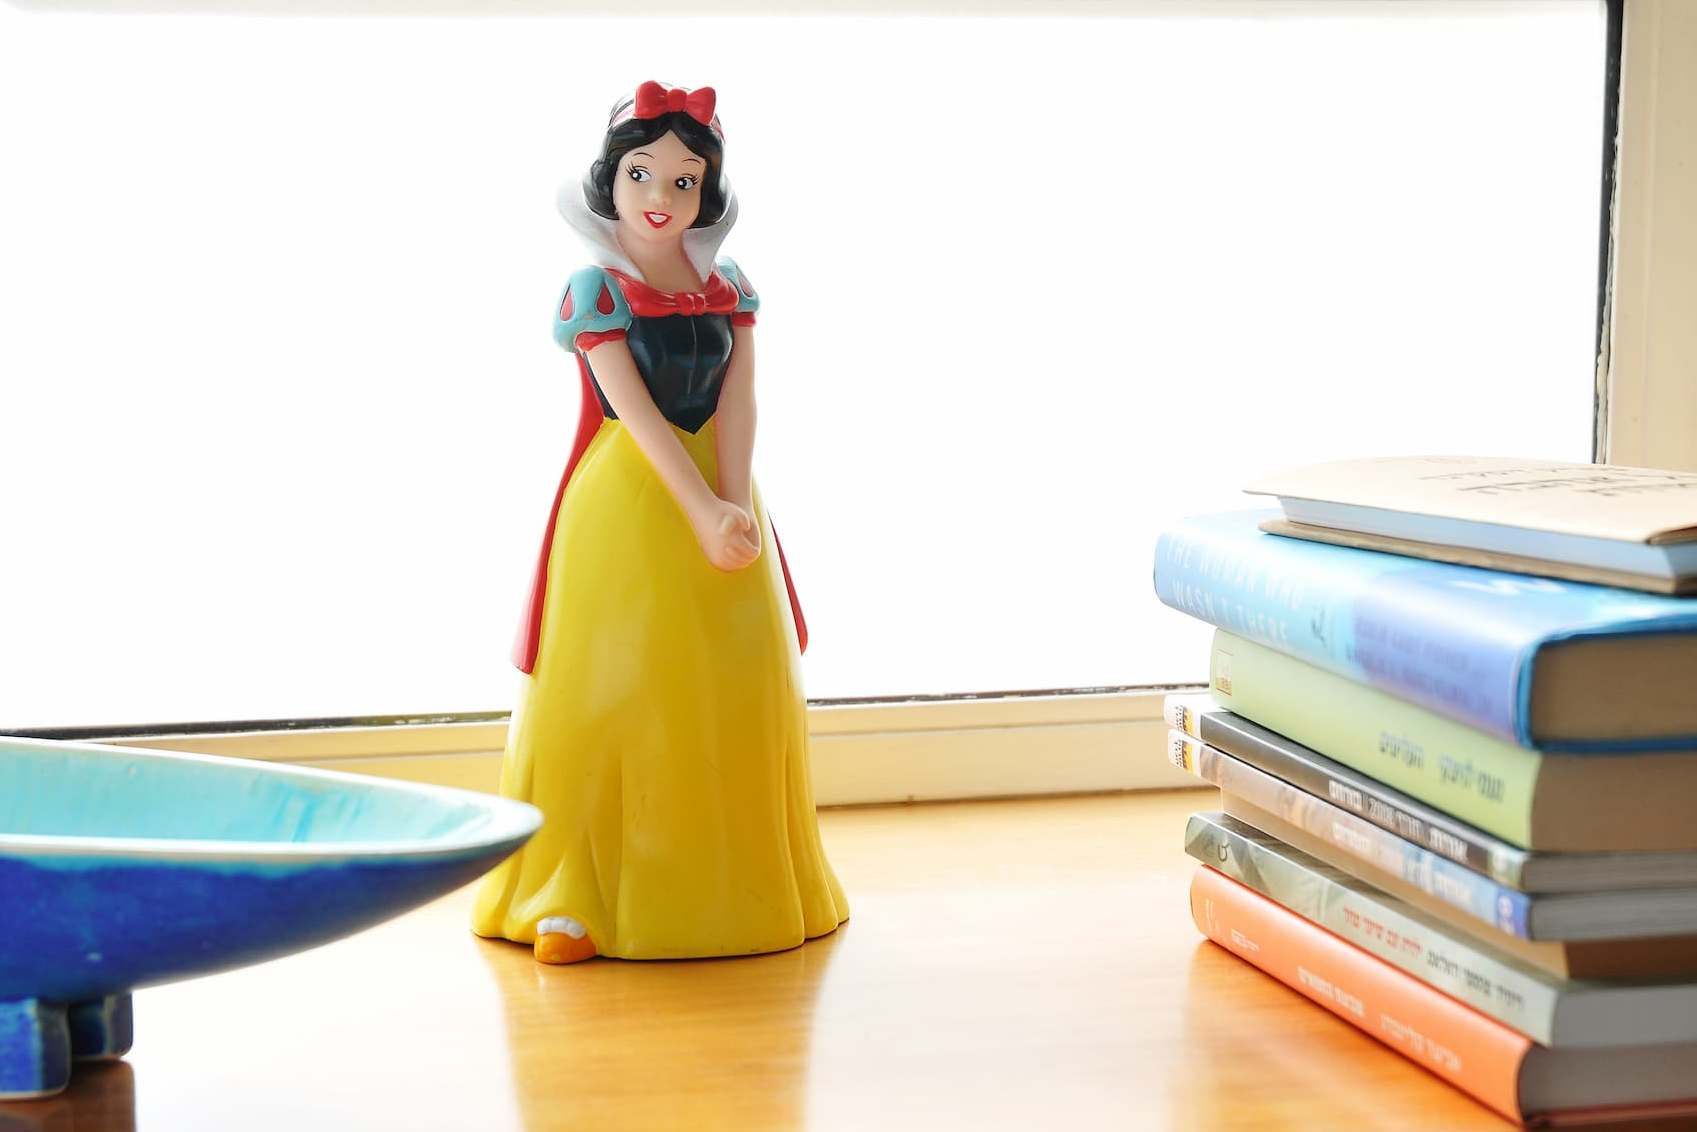 A smiling Cinderella figurine with a yellow dress and a red ribbon perched on a softly-lit wooden surface